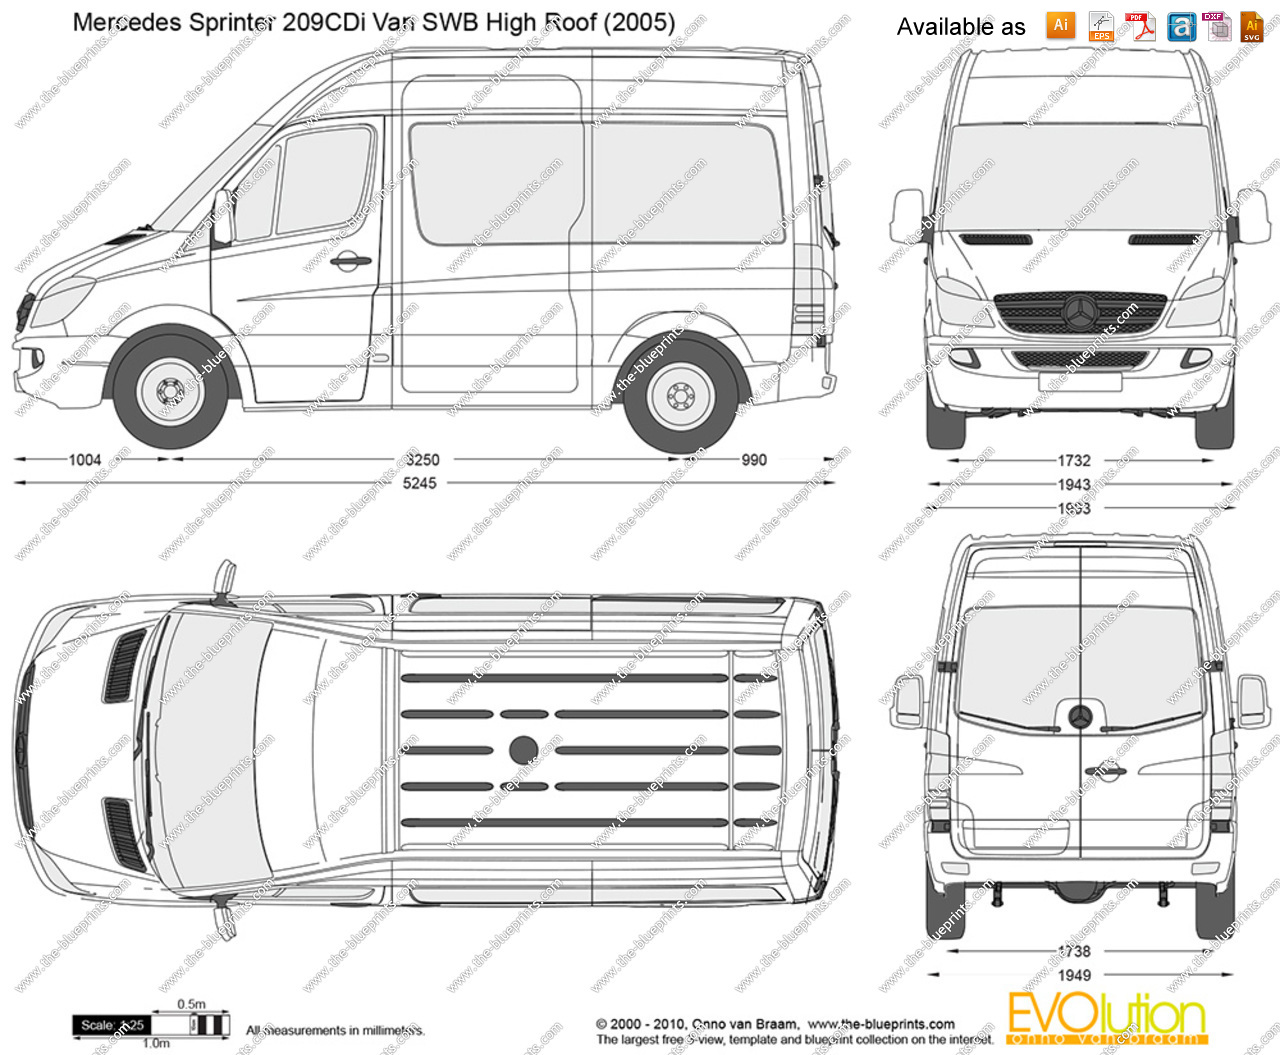 Mercedes-Benz Sprinter 209 2010 Technical specifications